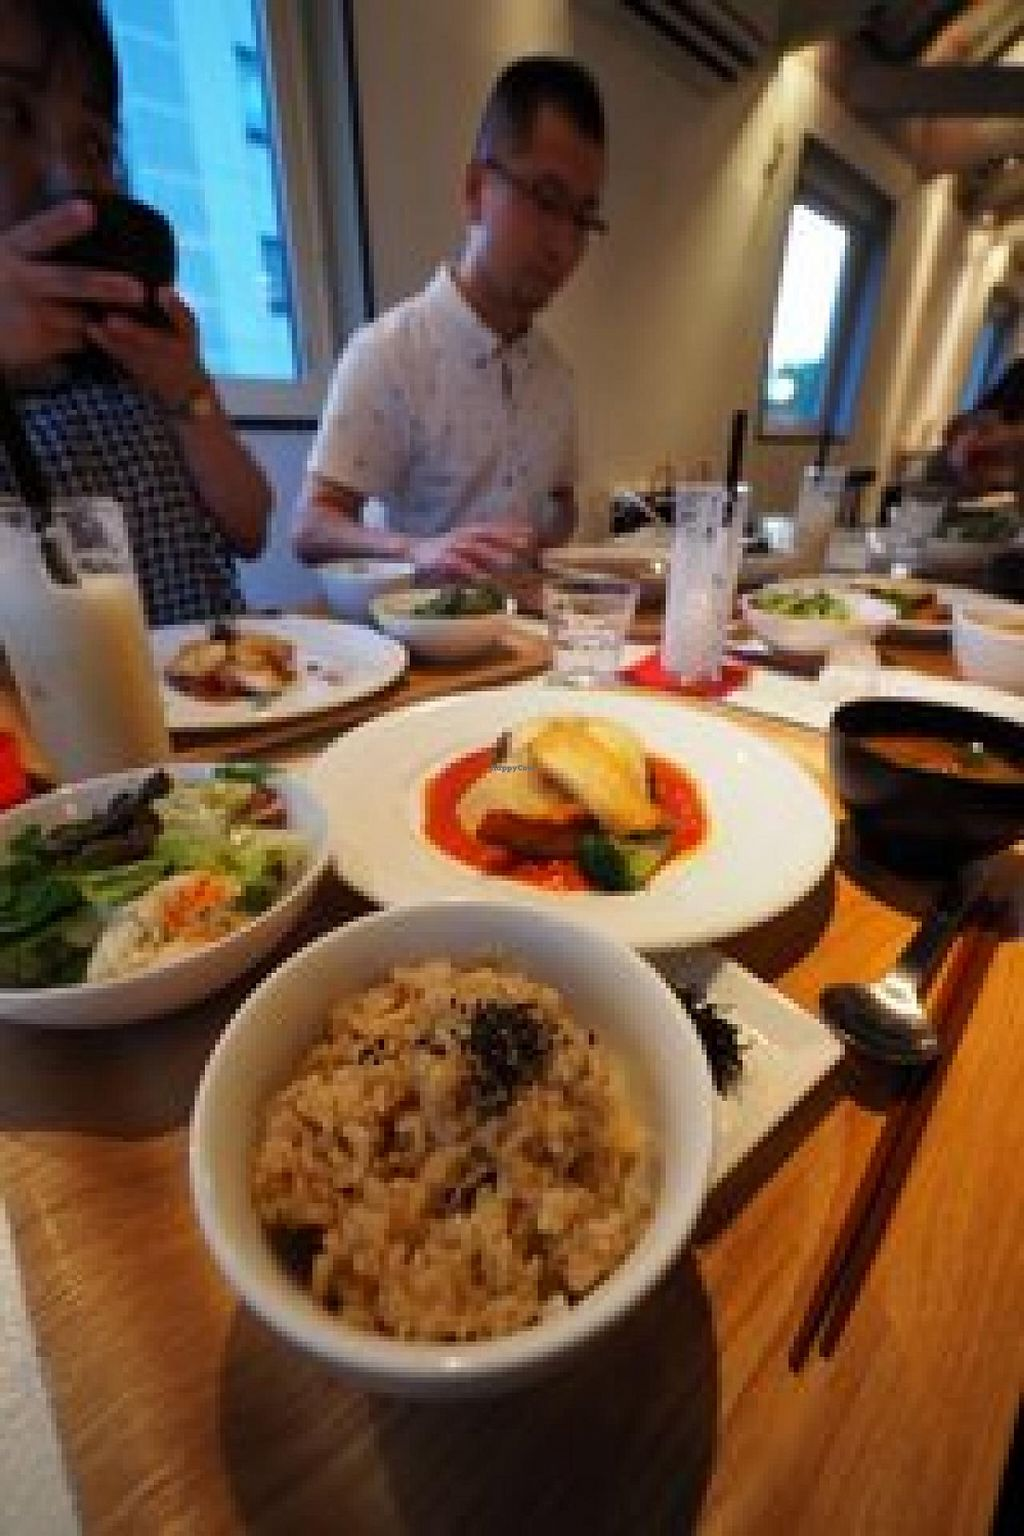 """Photo of Hibino Cafe AGT  by <a href=""""/members/profile/HaideeThomson"""">HaideeThomson</a> <br/>Vegetarian burger set at Hibino Cafe AGT <br/> July 14, 2014  - <a href='/contact/abuse/image/48828/74052'>Report</a>"""